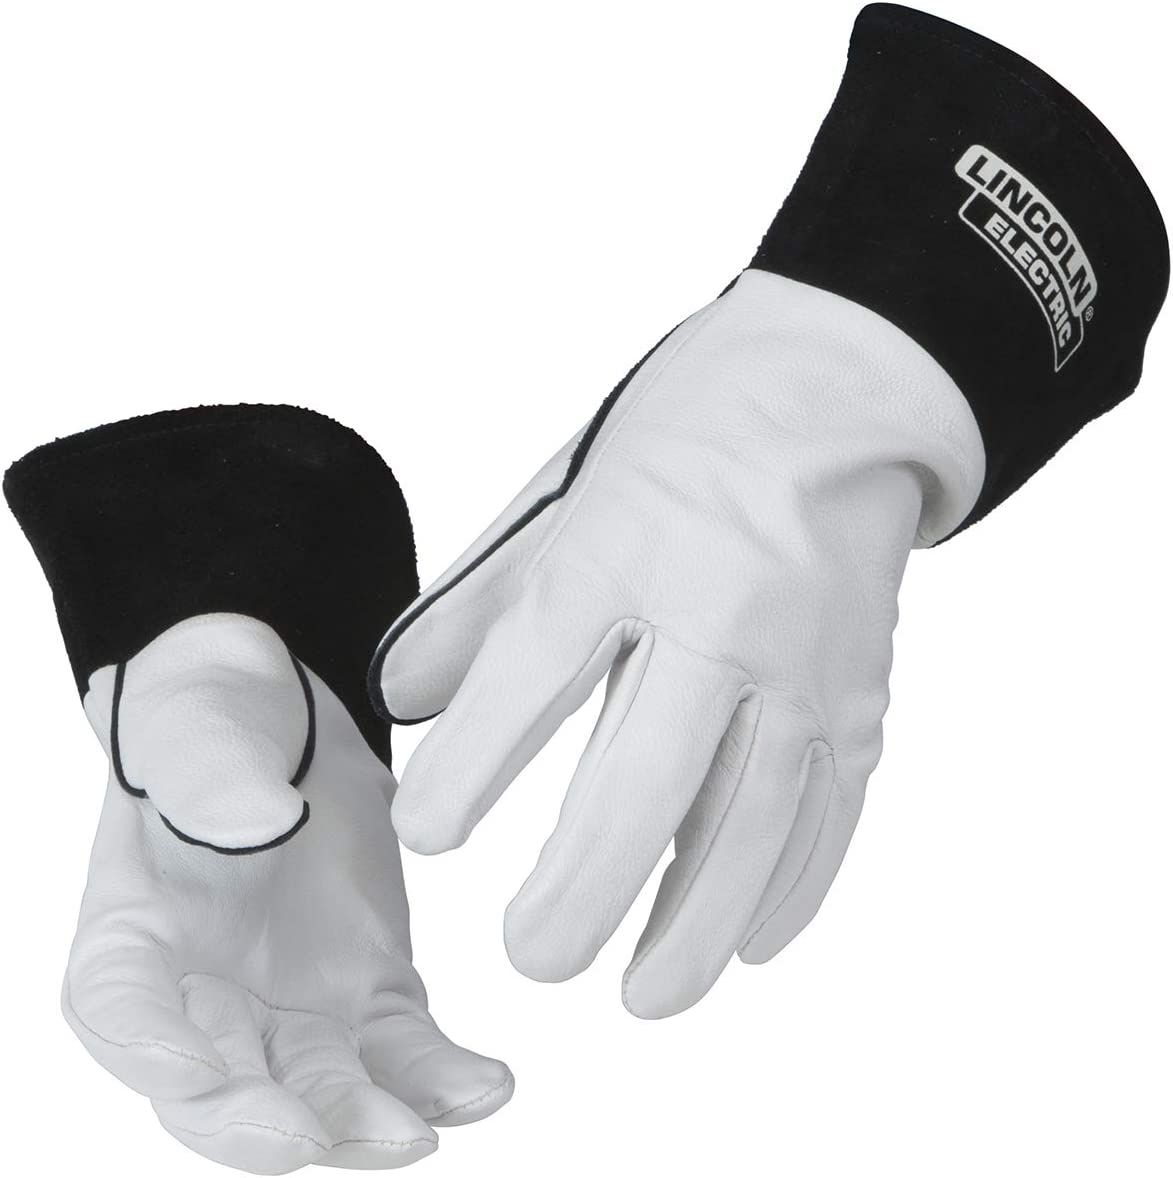 Lincoln Electric Grain Leather TIG Recommended Long Beach Mall High Gloves Welding Dexteri